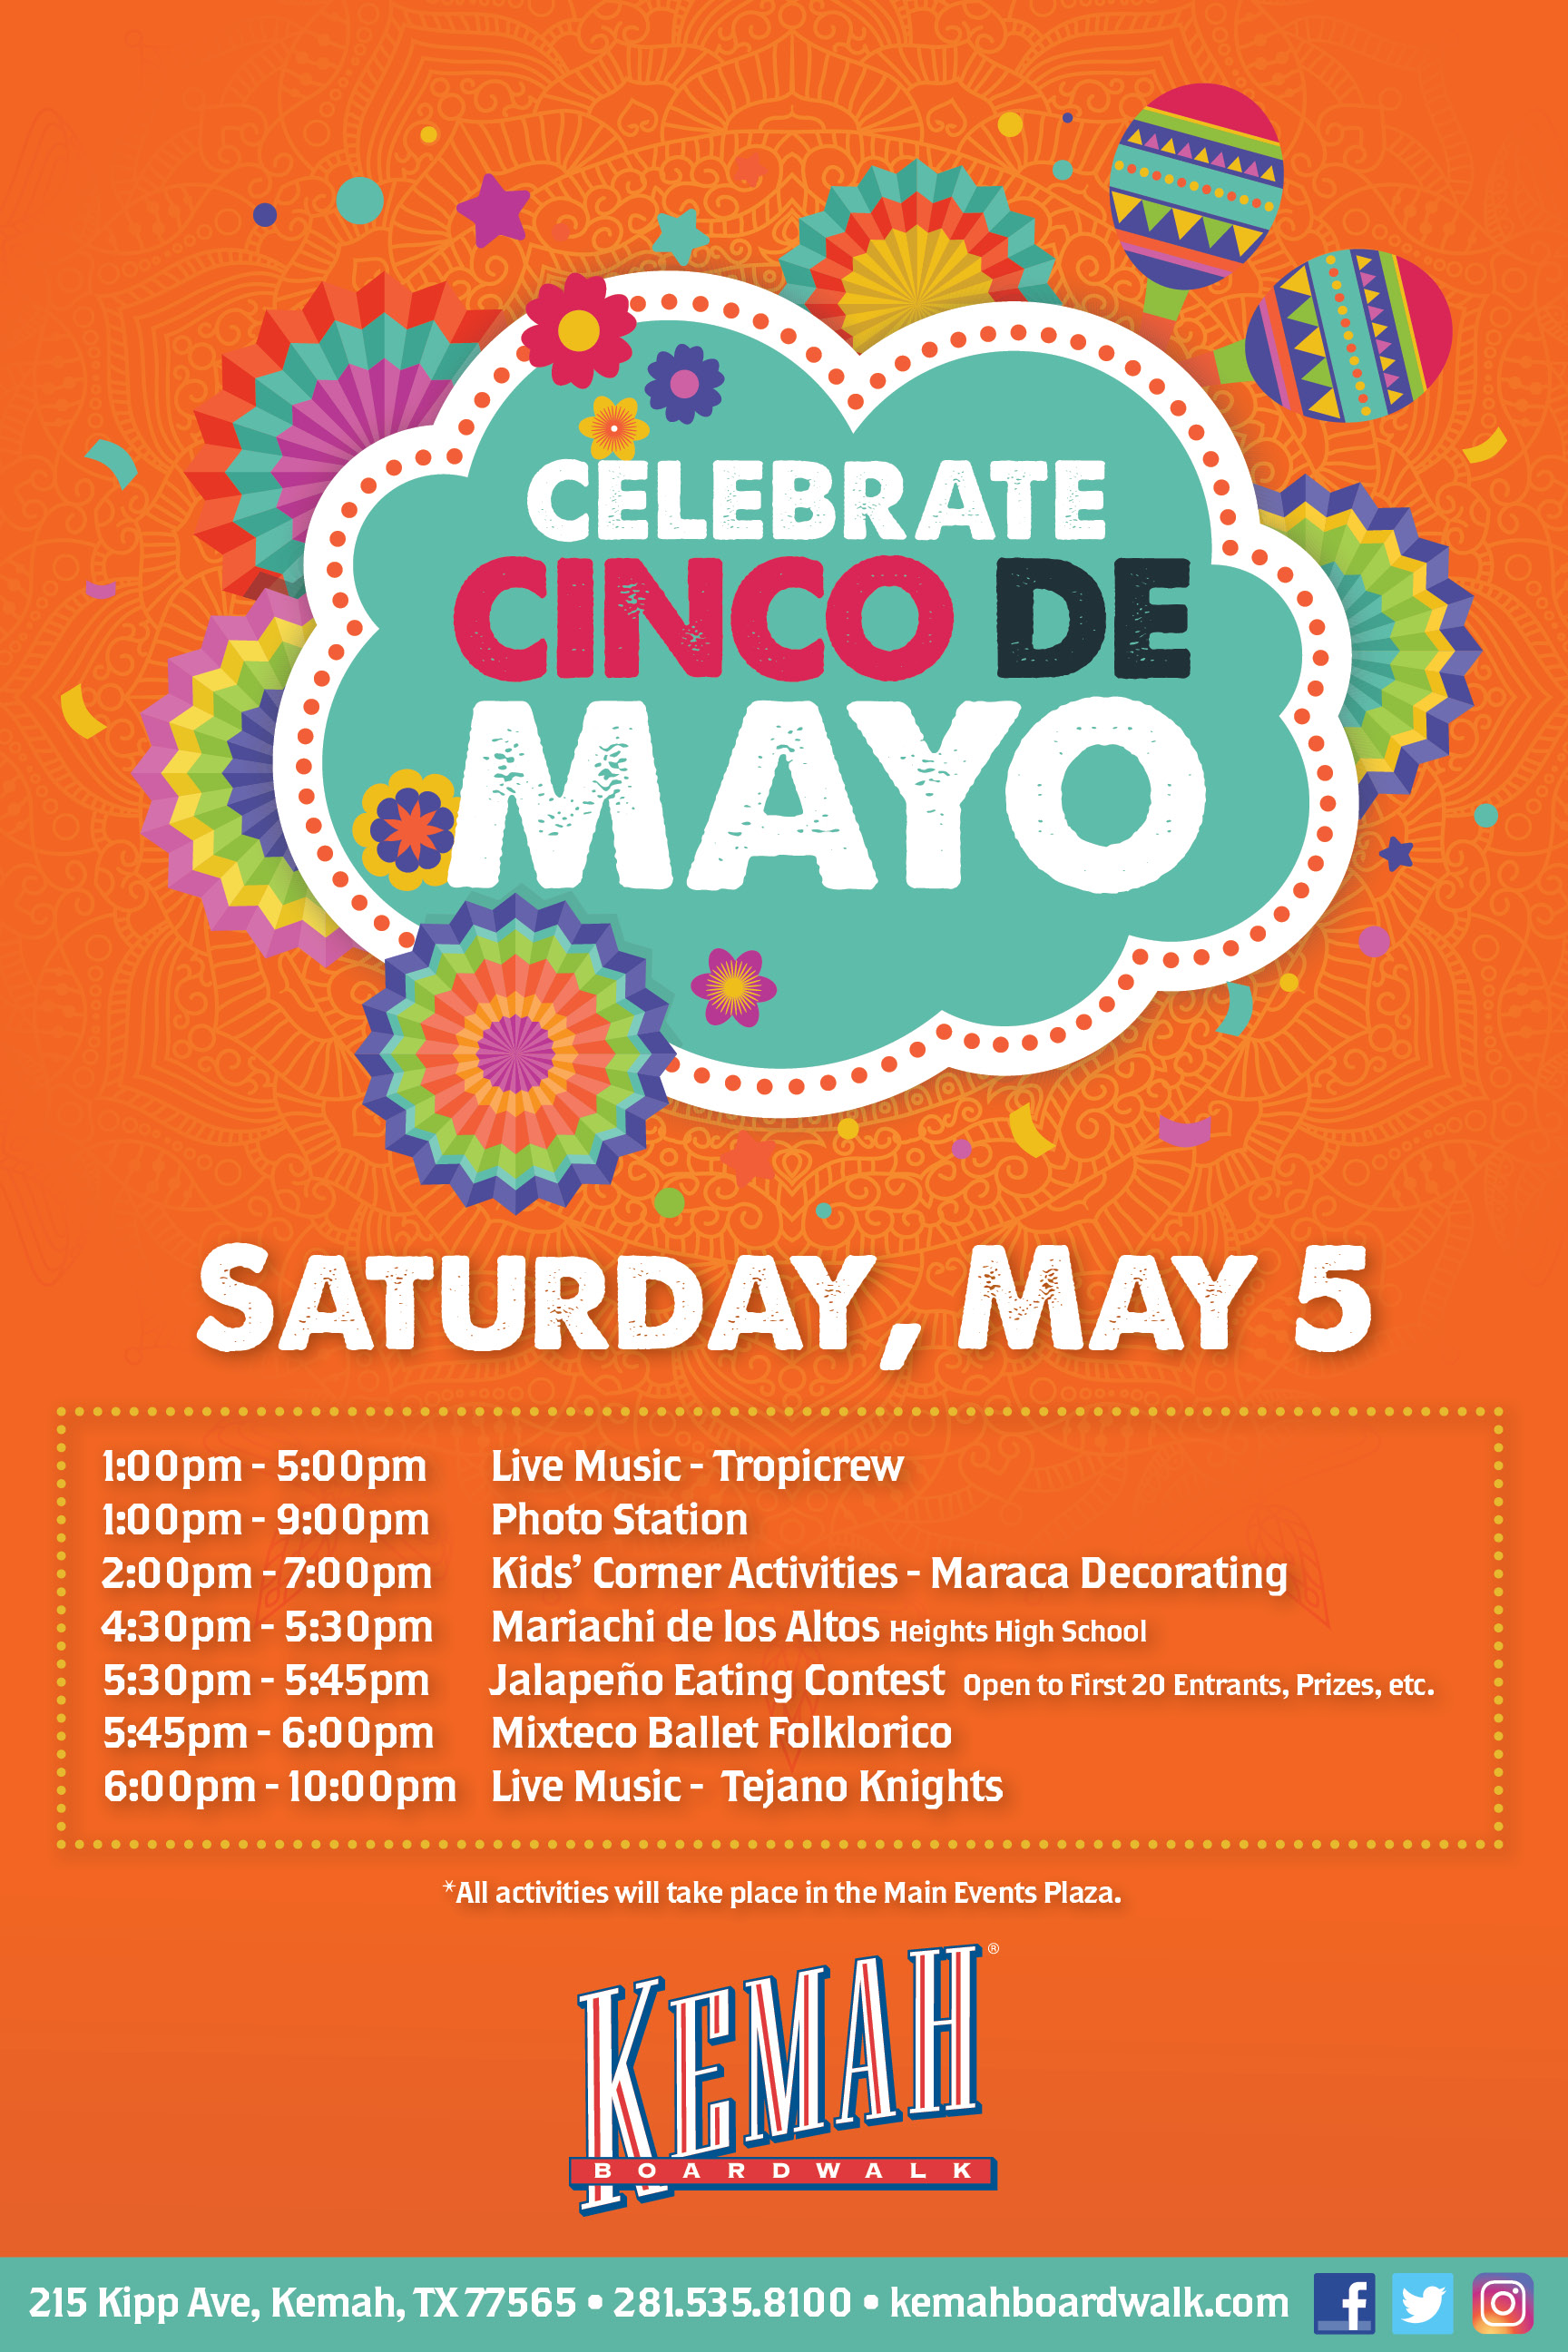 Celebrate Cinco De Mayo at the Kemah Boardwalk. Events from 1pm - 10pm.